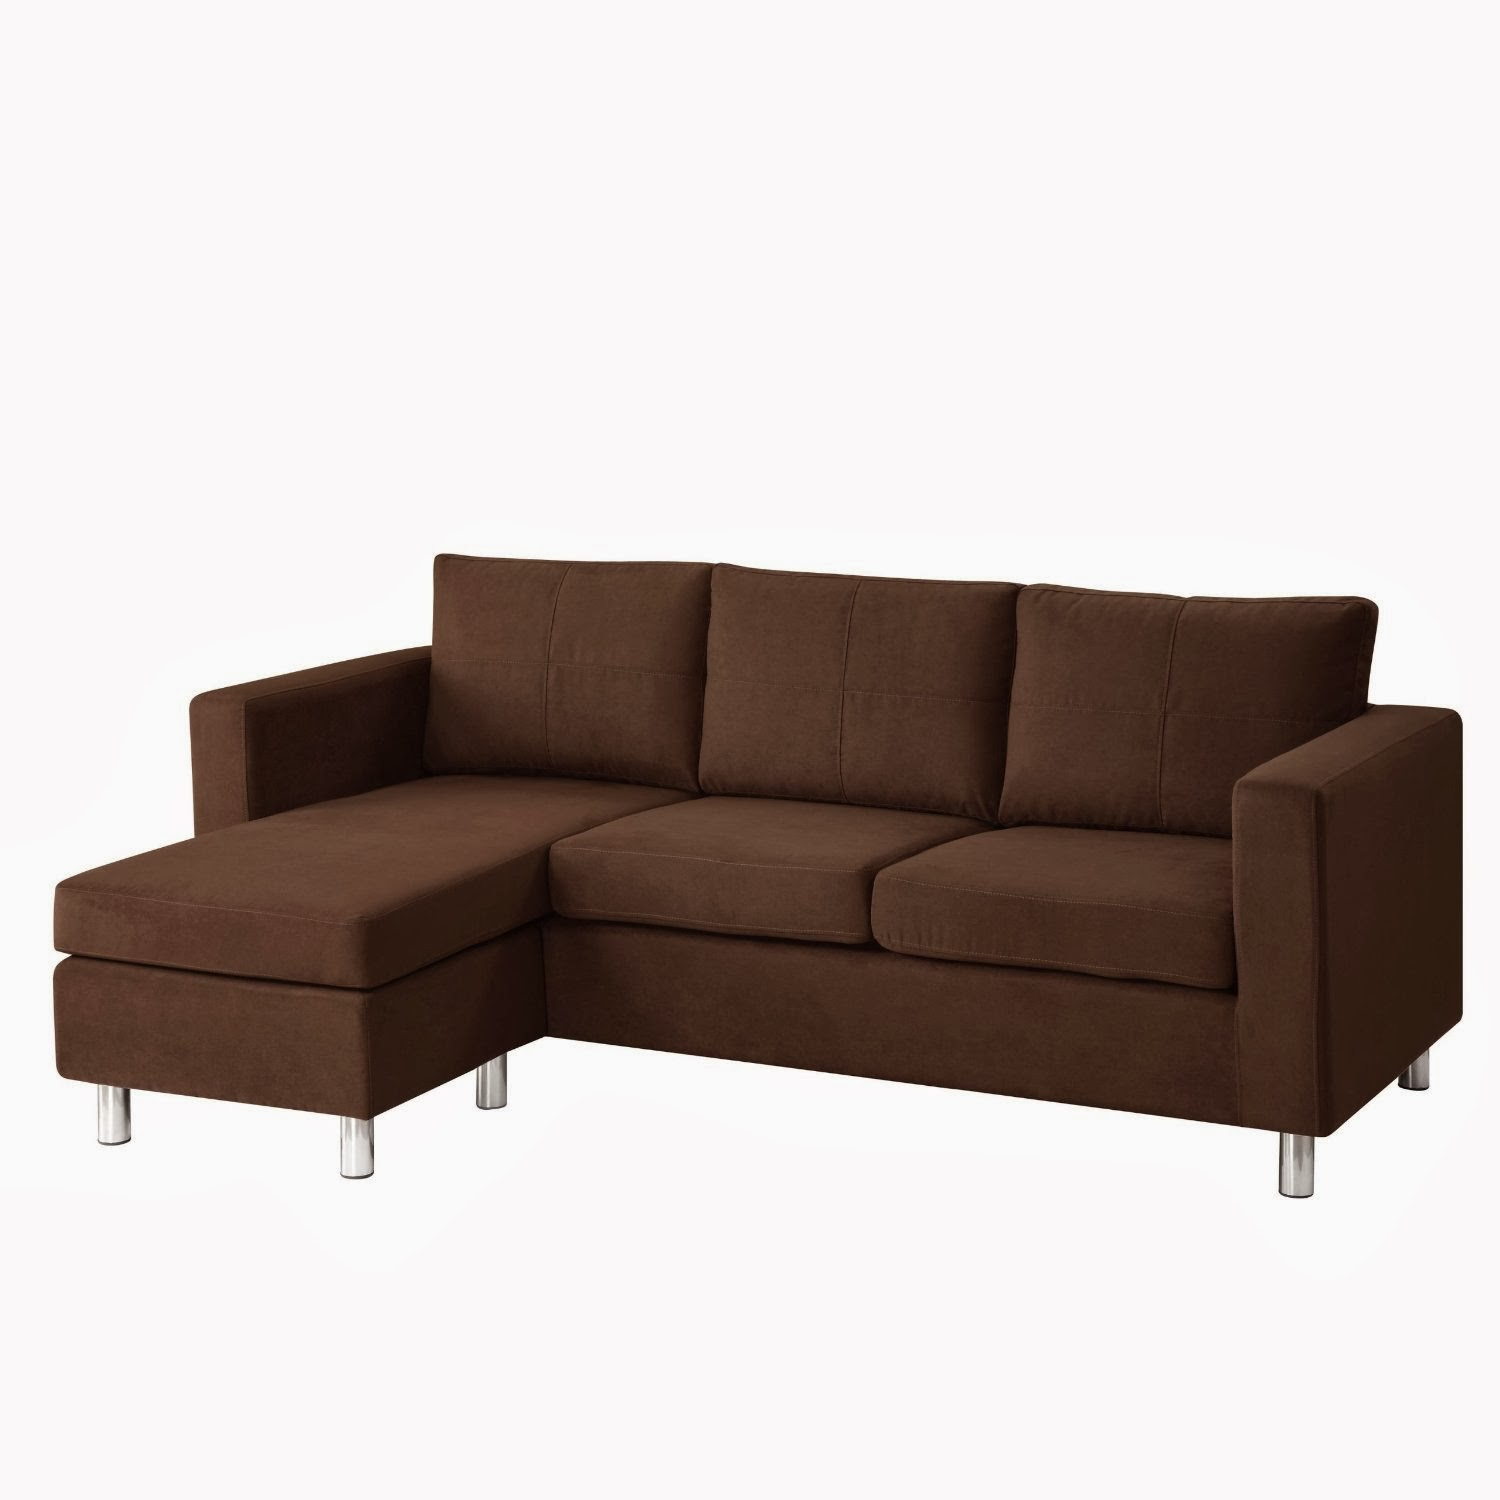 Small sectional sofas reviews small sectional sofa with for Furniture sofas and couches